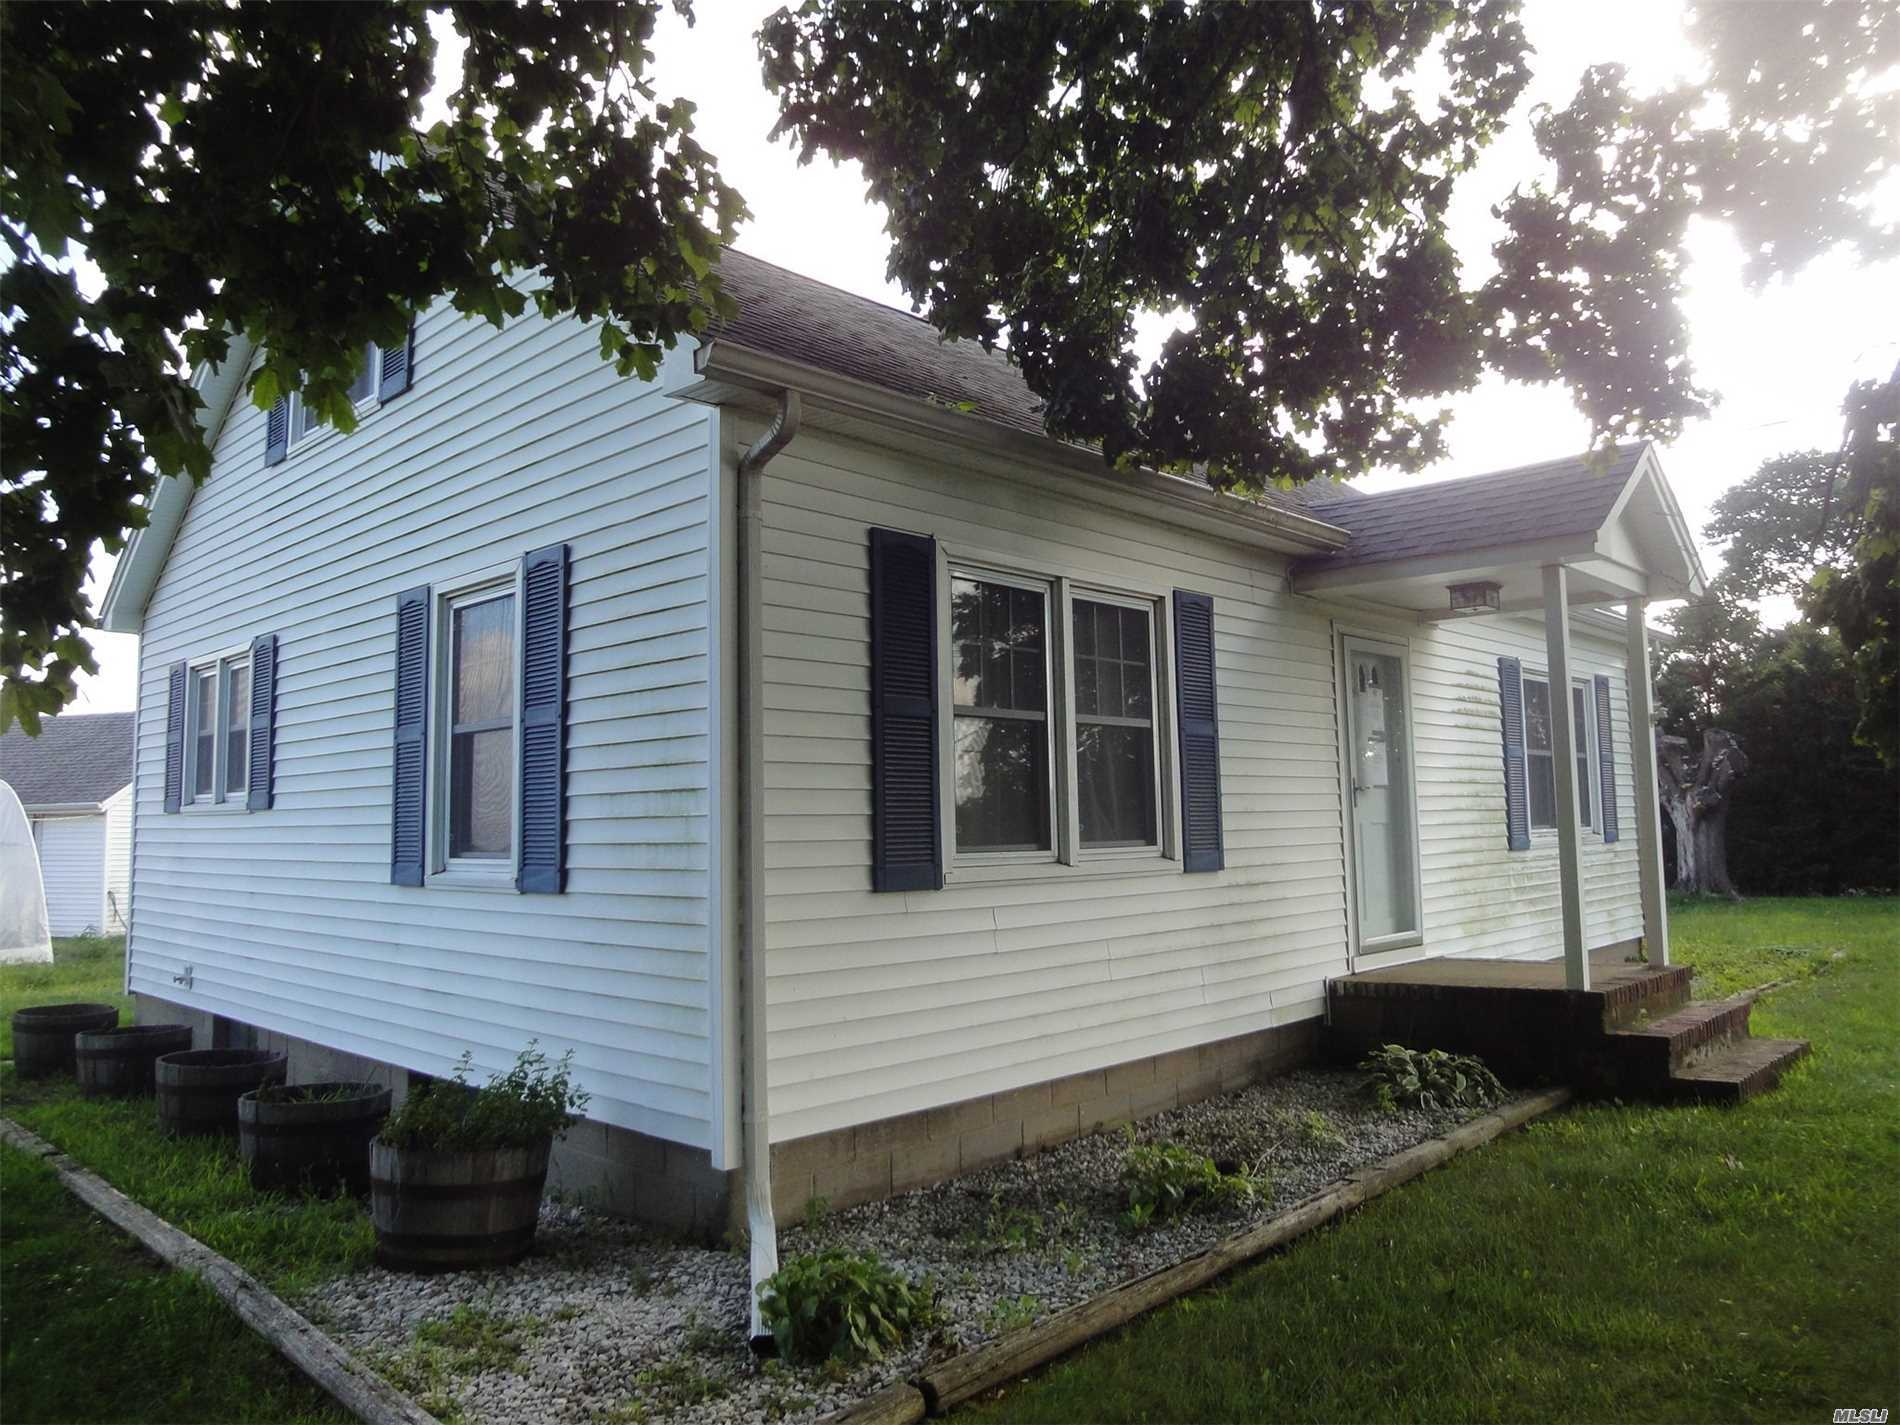 Located In The Agricultural Protection Zone, This 3 Br-1Bath Cape Is Situated On A True Acre In The Rural Calverton Setting. With Excellent Roadside Visibility, This Home Presents A Great Opportunity For The Micro-Farmer, Plant Lover Or Home Based Professional.